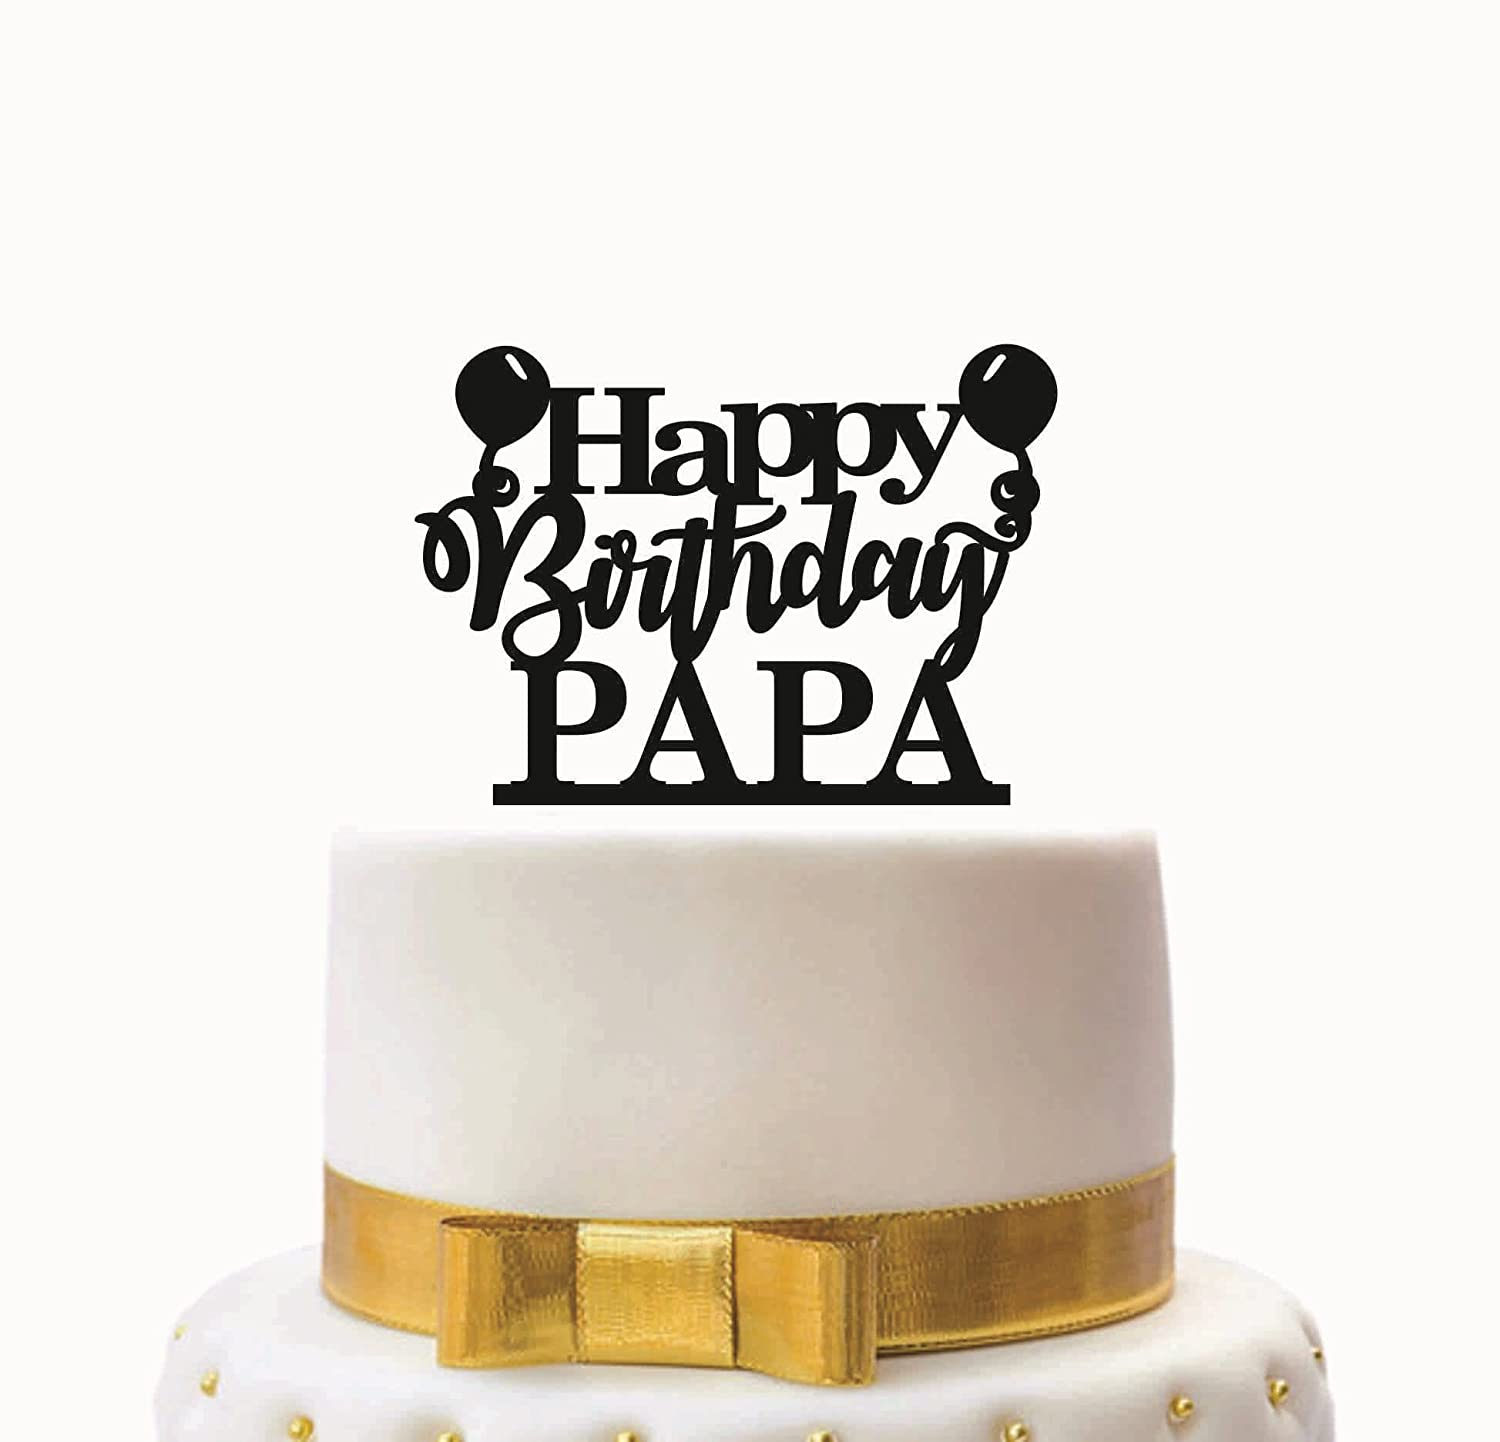 SYGA Black Happy Birthday Papa Cake Topper For Birthday Party ...